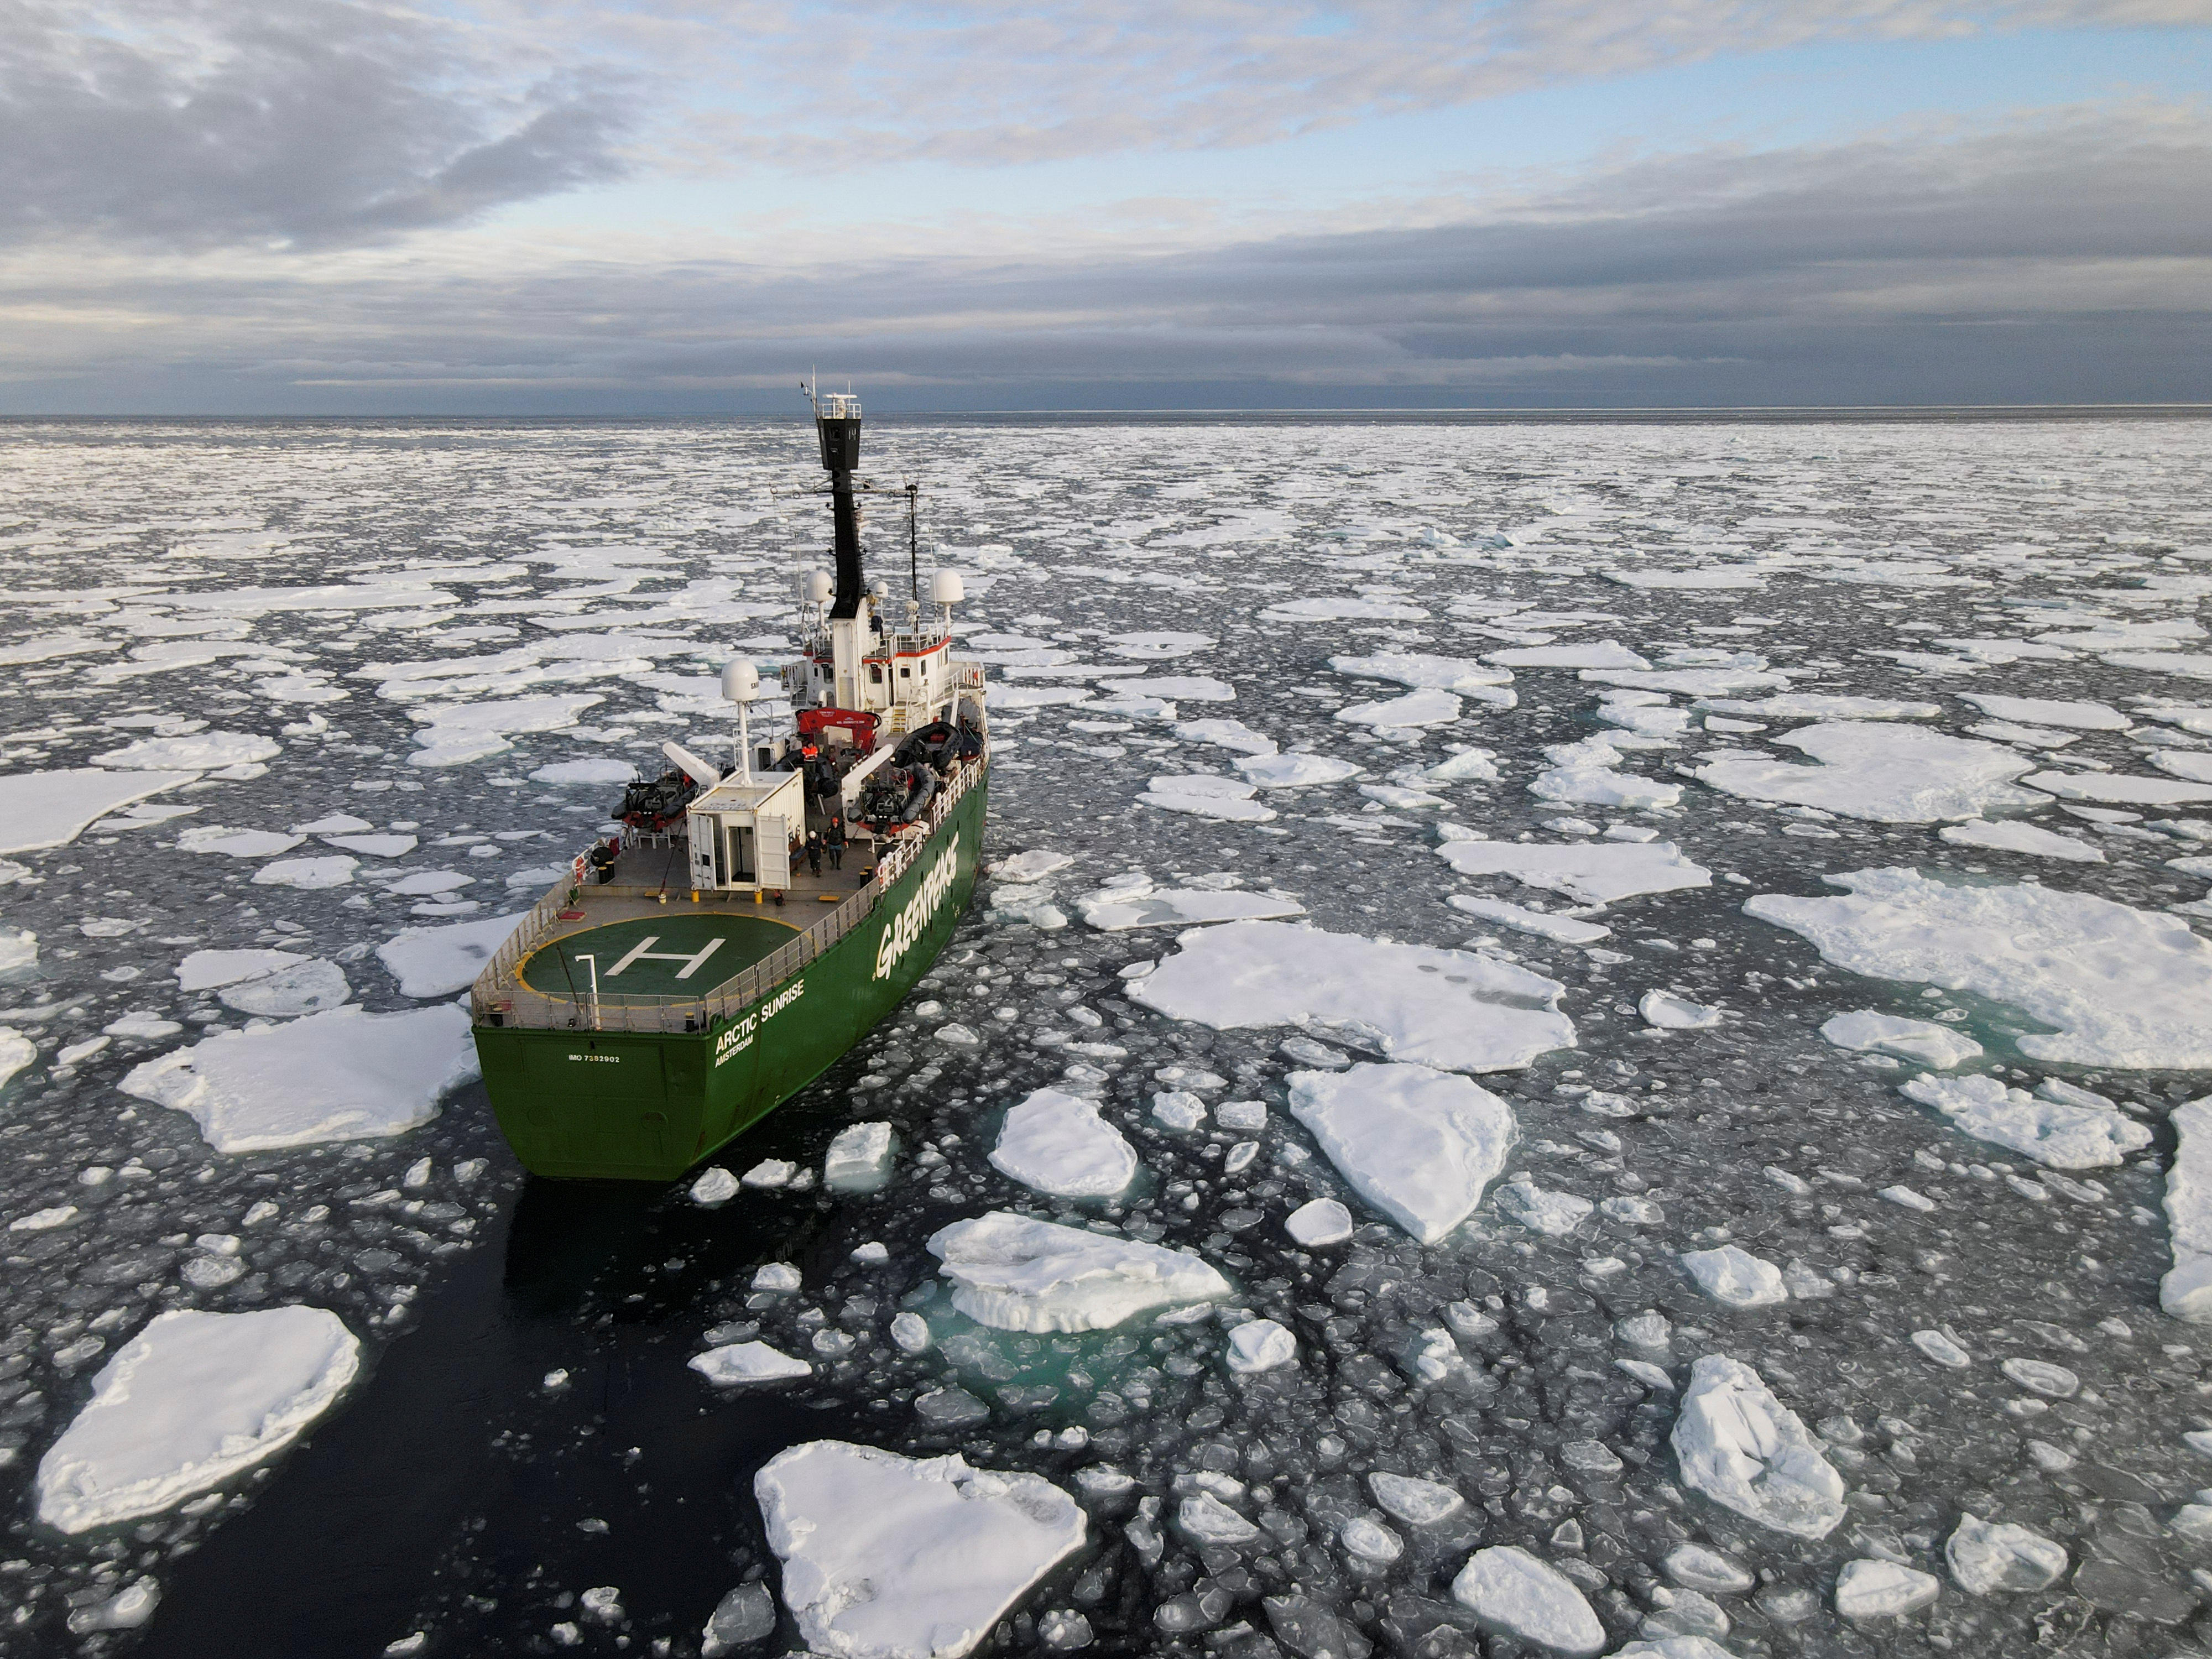 Greenpeace's Arctic Sunrise ship navigates through floating ice in the Arctic Ocean, September 15, 2020. Picture taken September 15, 2020. Picture taken with a drone. REUTERS/Natalie Thomas/File Photo